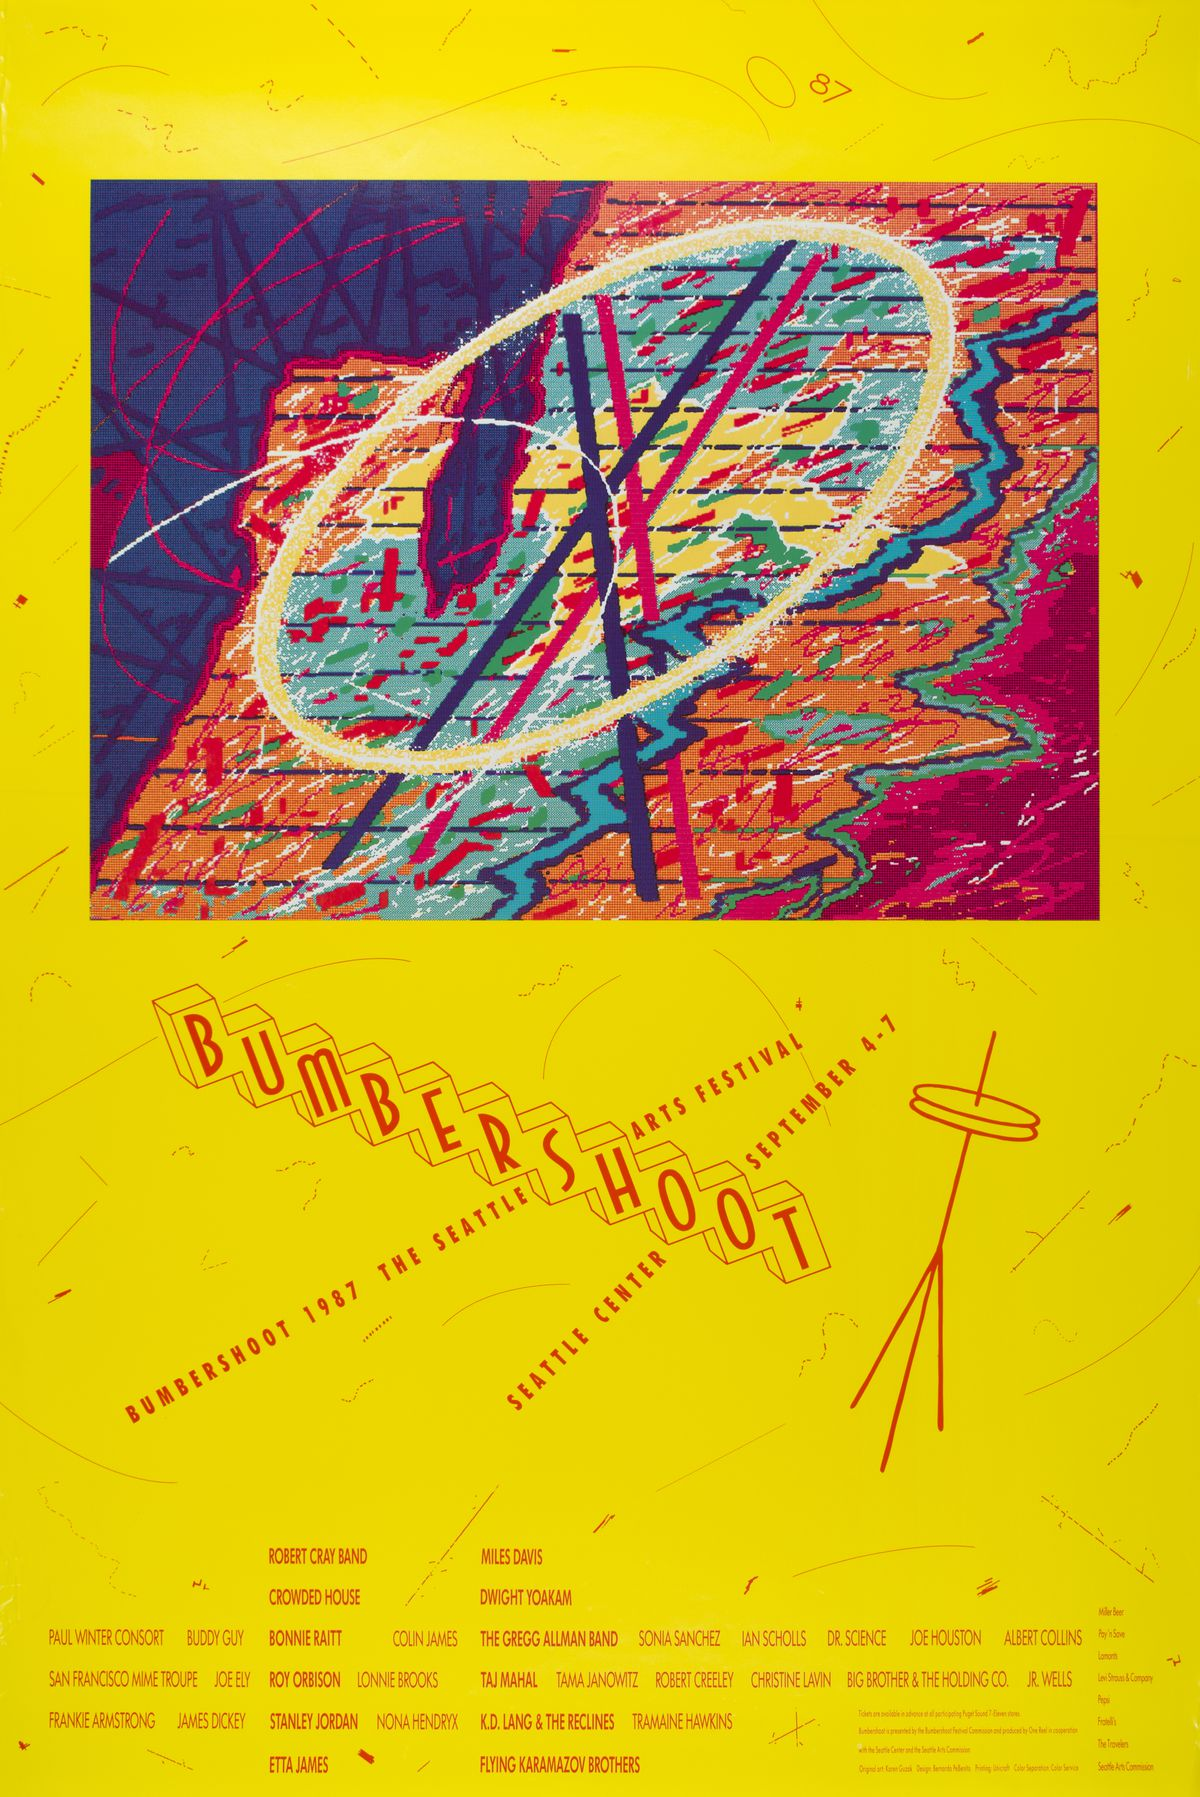 """A yellow poster has a rectangle of an abstract design up top, and a logo that reads """"BUMBERSHOOT"""" in red text with an abstract Space Needle below, then a list of artists in small print at the bottom."""